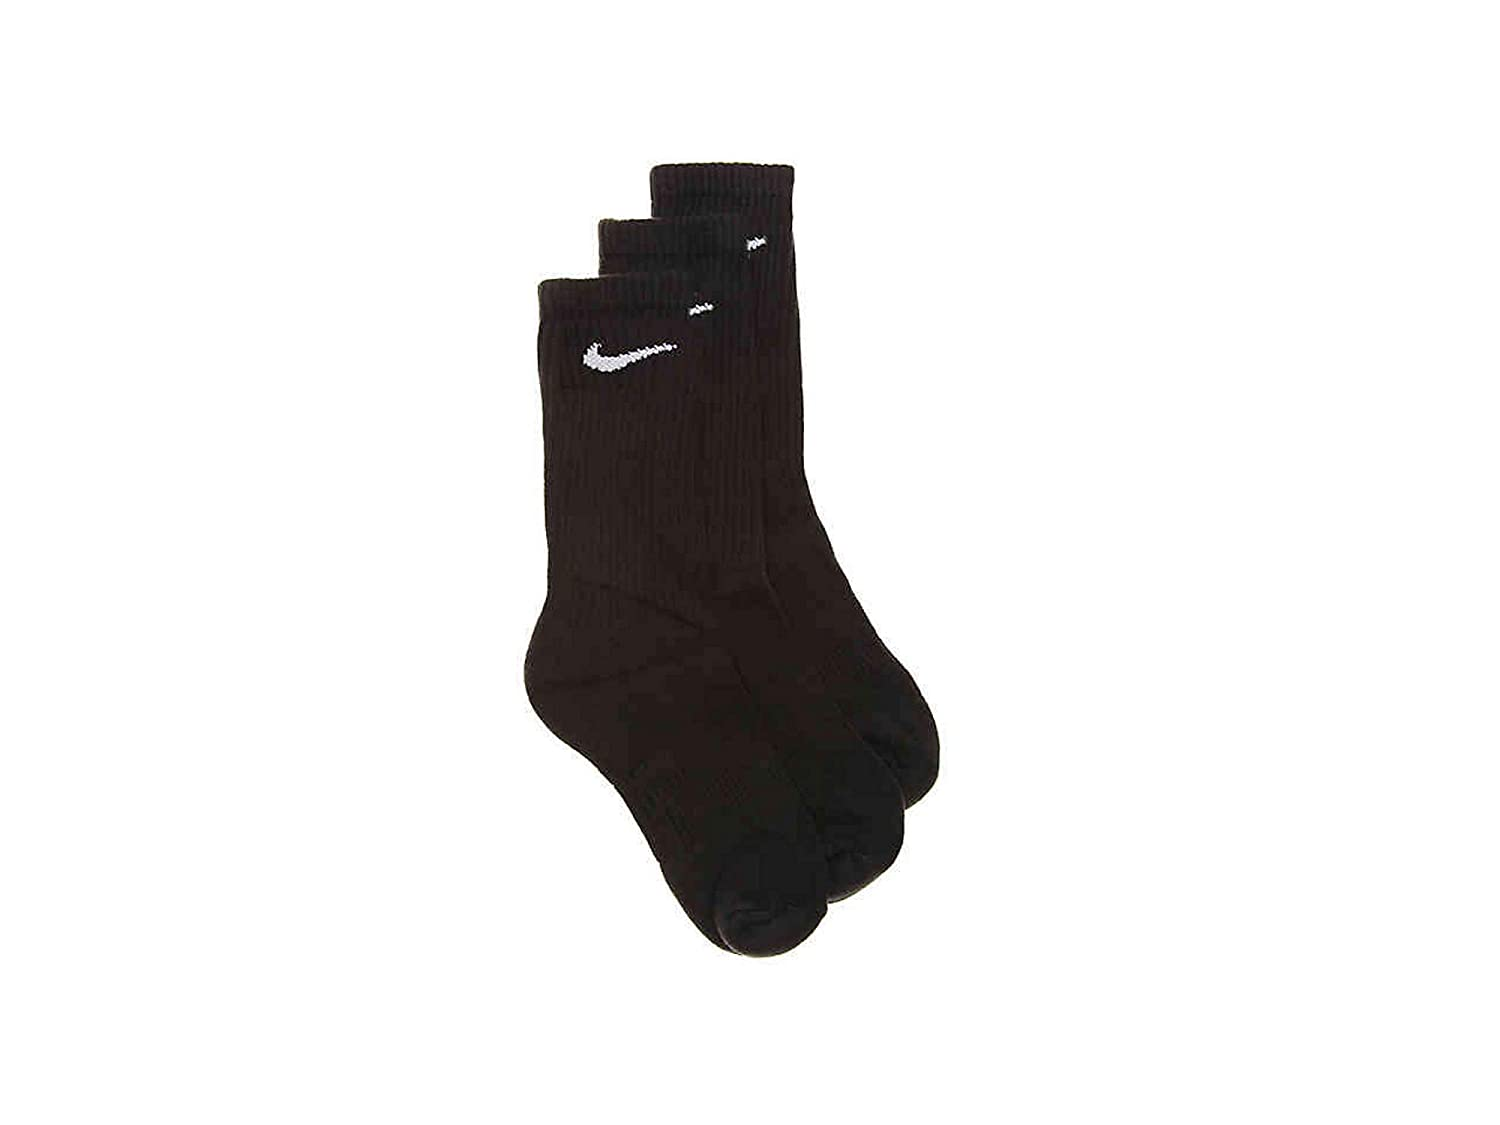 Sock Size Nike Young Athletes Toddler Kids Cushioned 3-Pair Crew Socks Shoes 7C-10CY//4-5